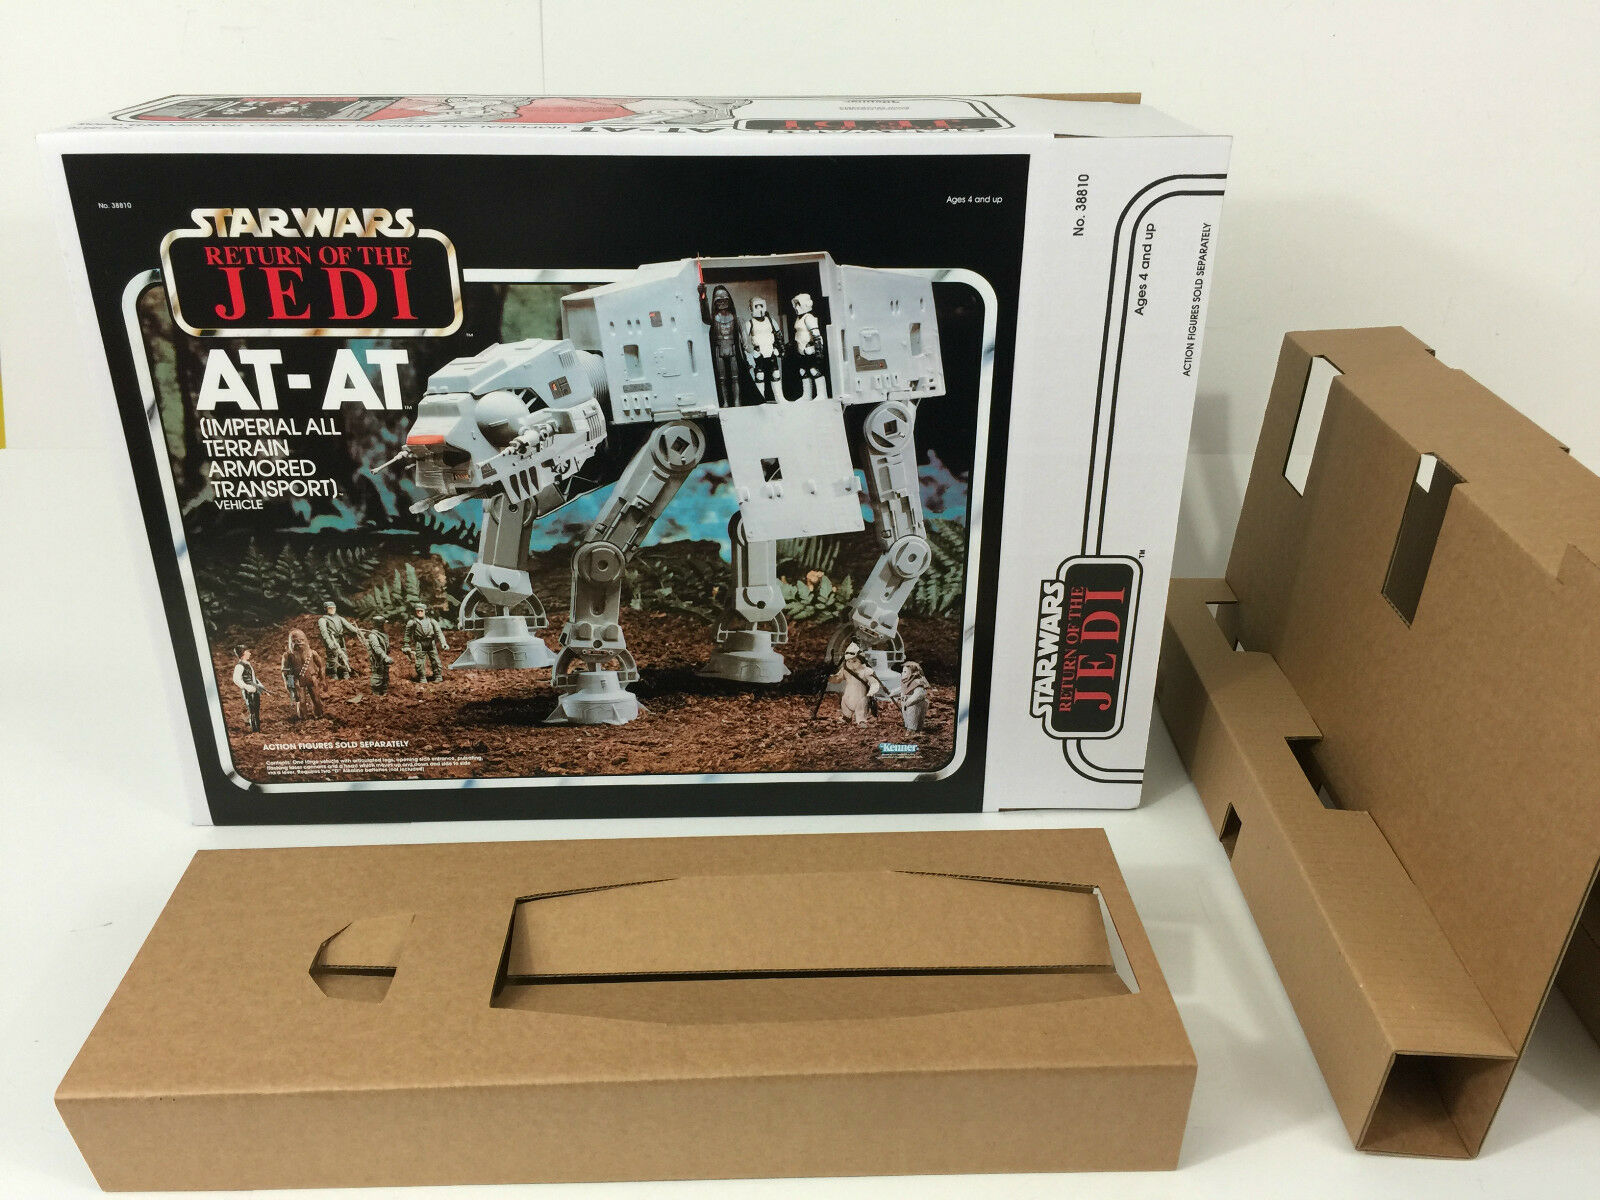 Replacement vintage Star Wars return of the jedi at-at box + inserts